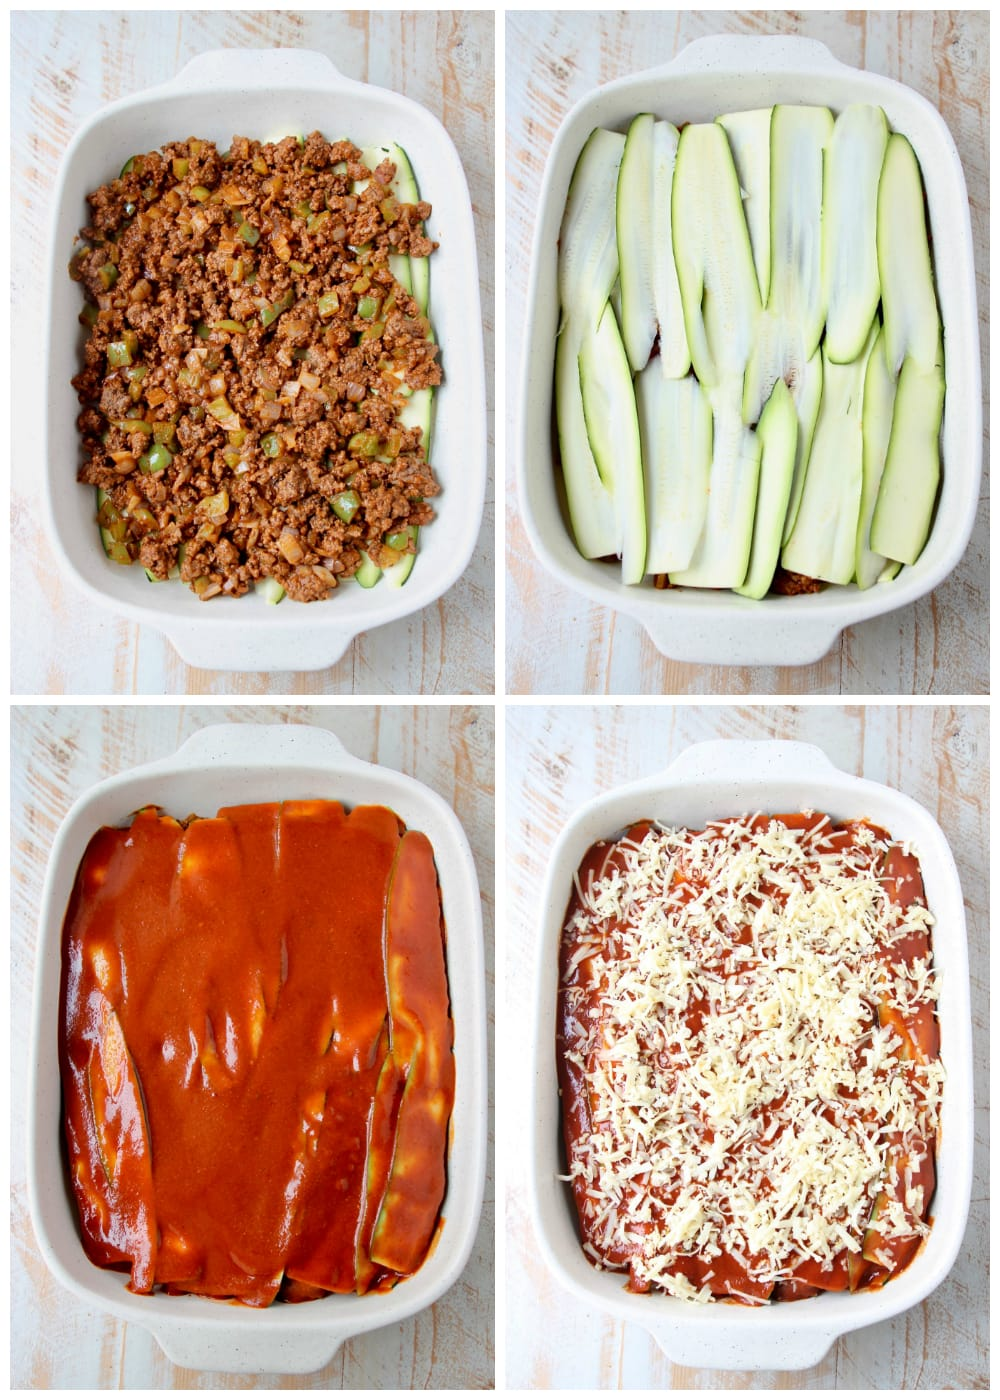 Instructional images of how to make low carb zucchini enchiladas with ground beef and red sauce